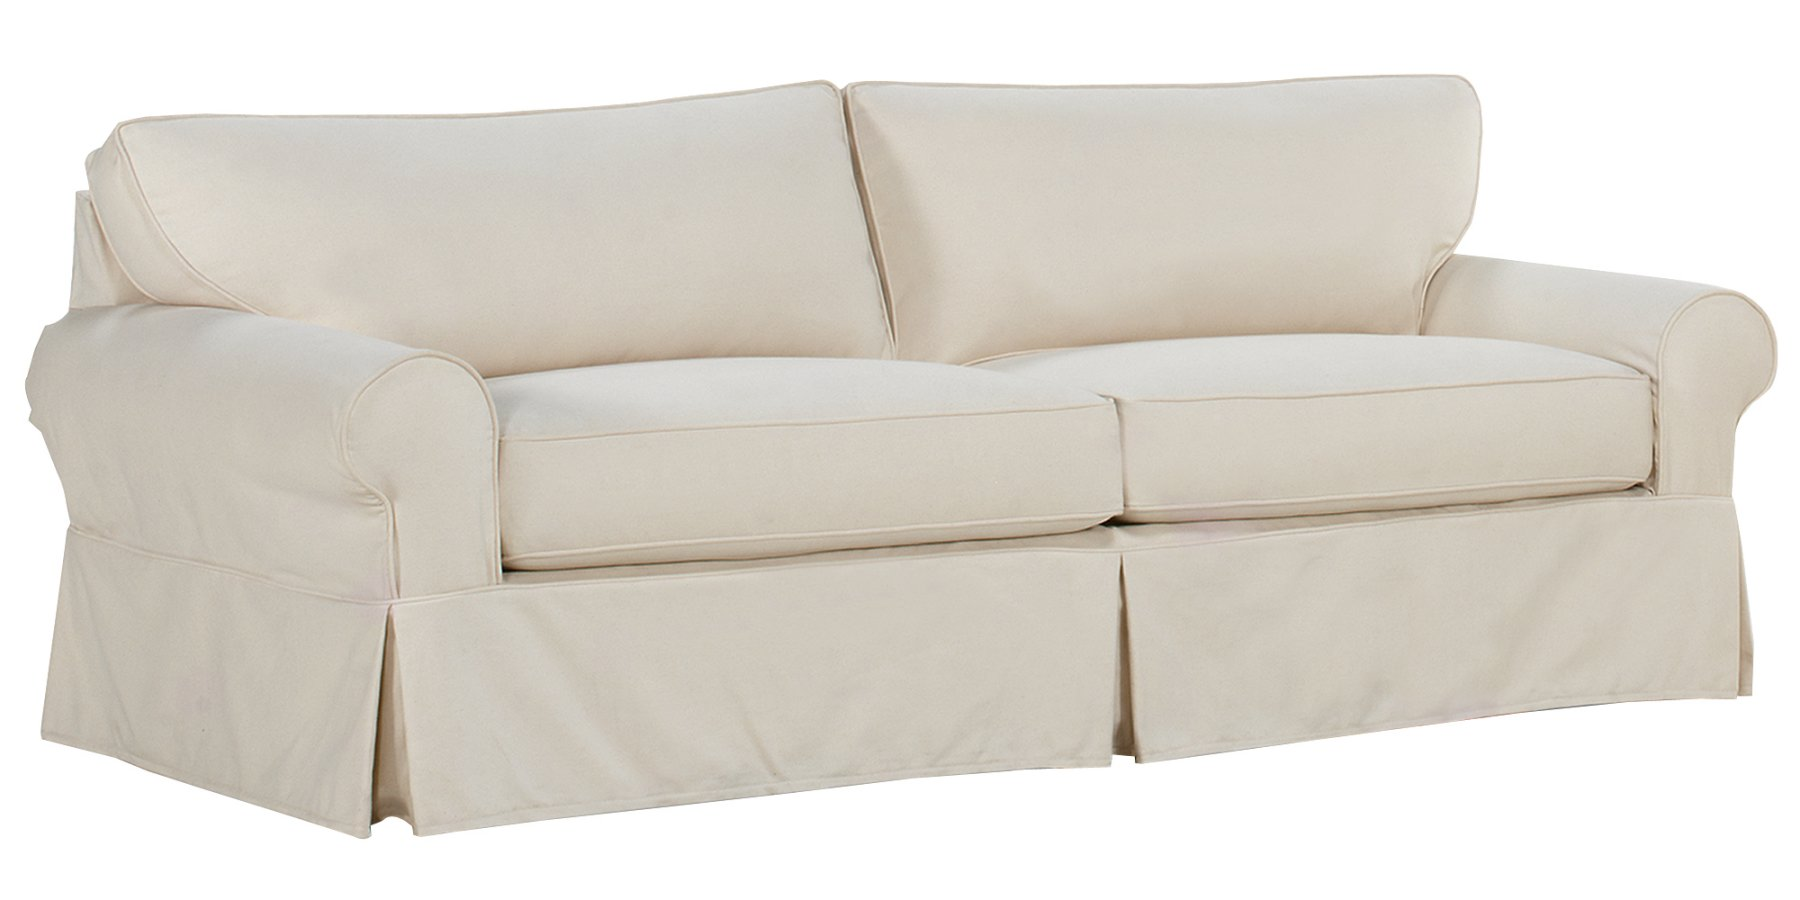 Oversized Sofas And Sofa Slipcover Furniture line